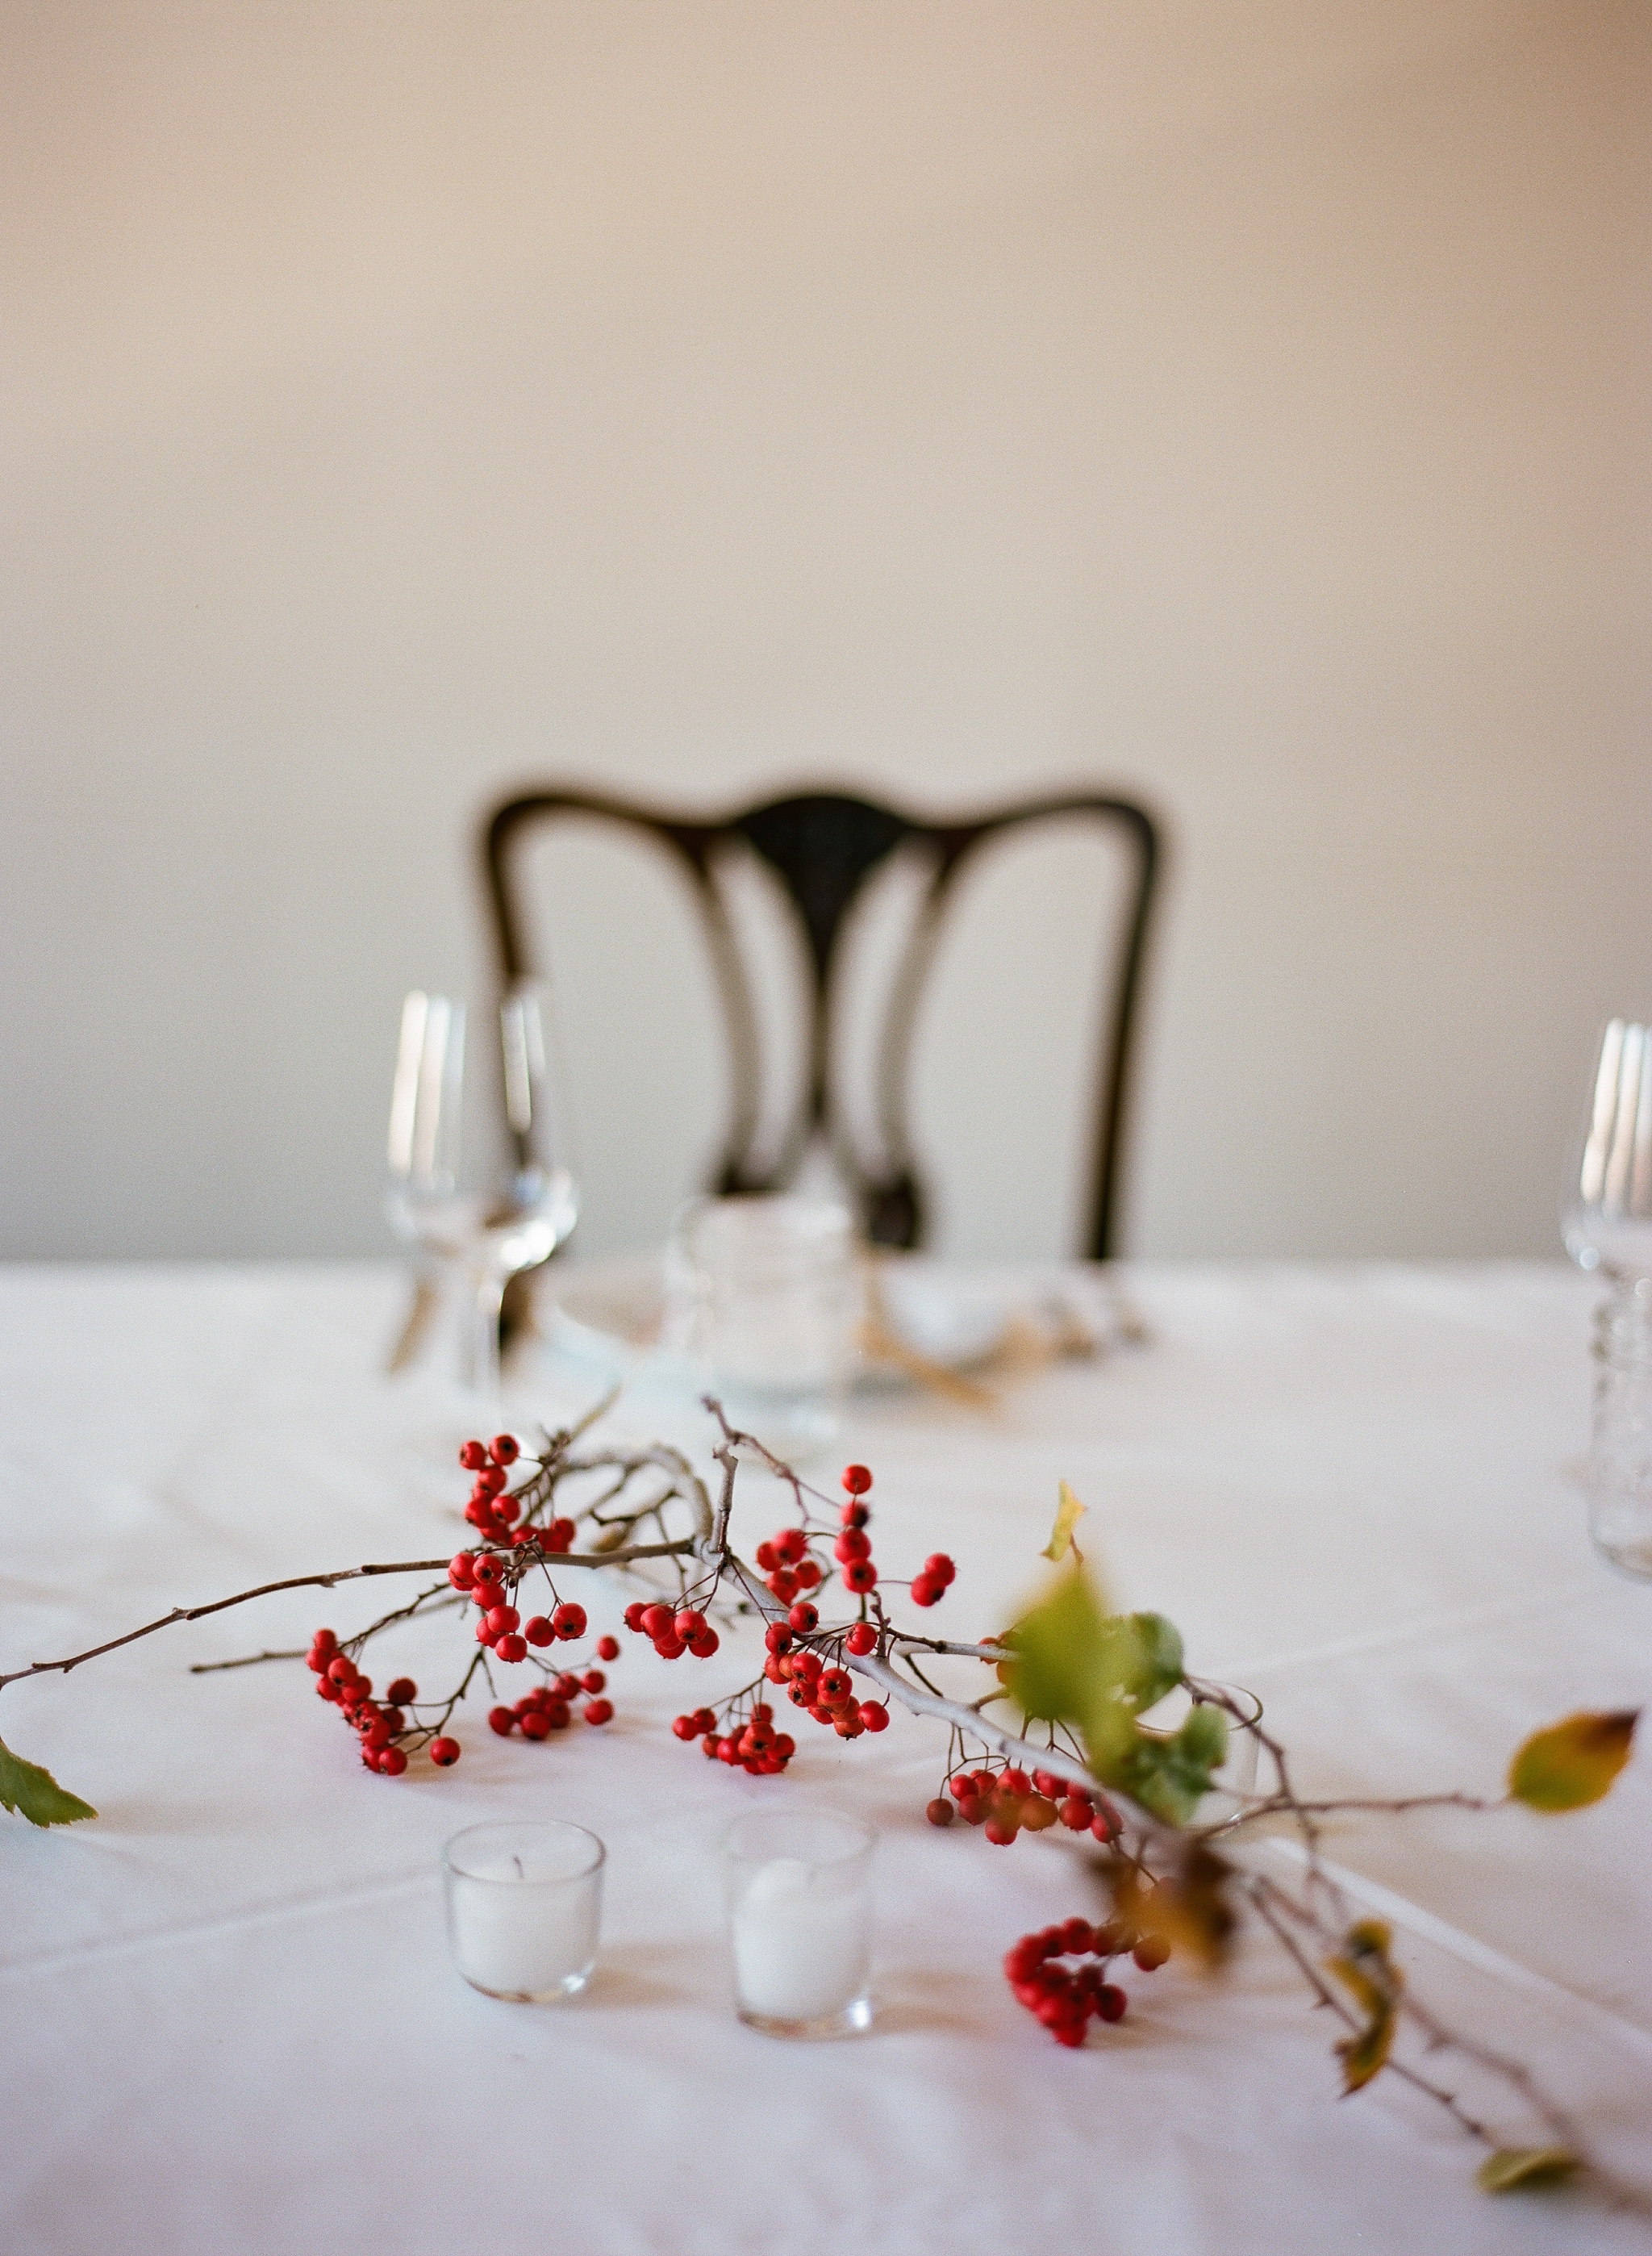 PDR place setting lo res.jpg